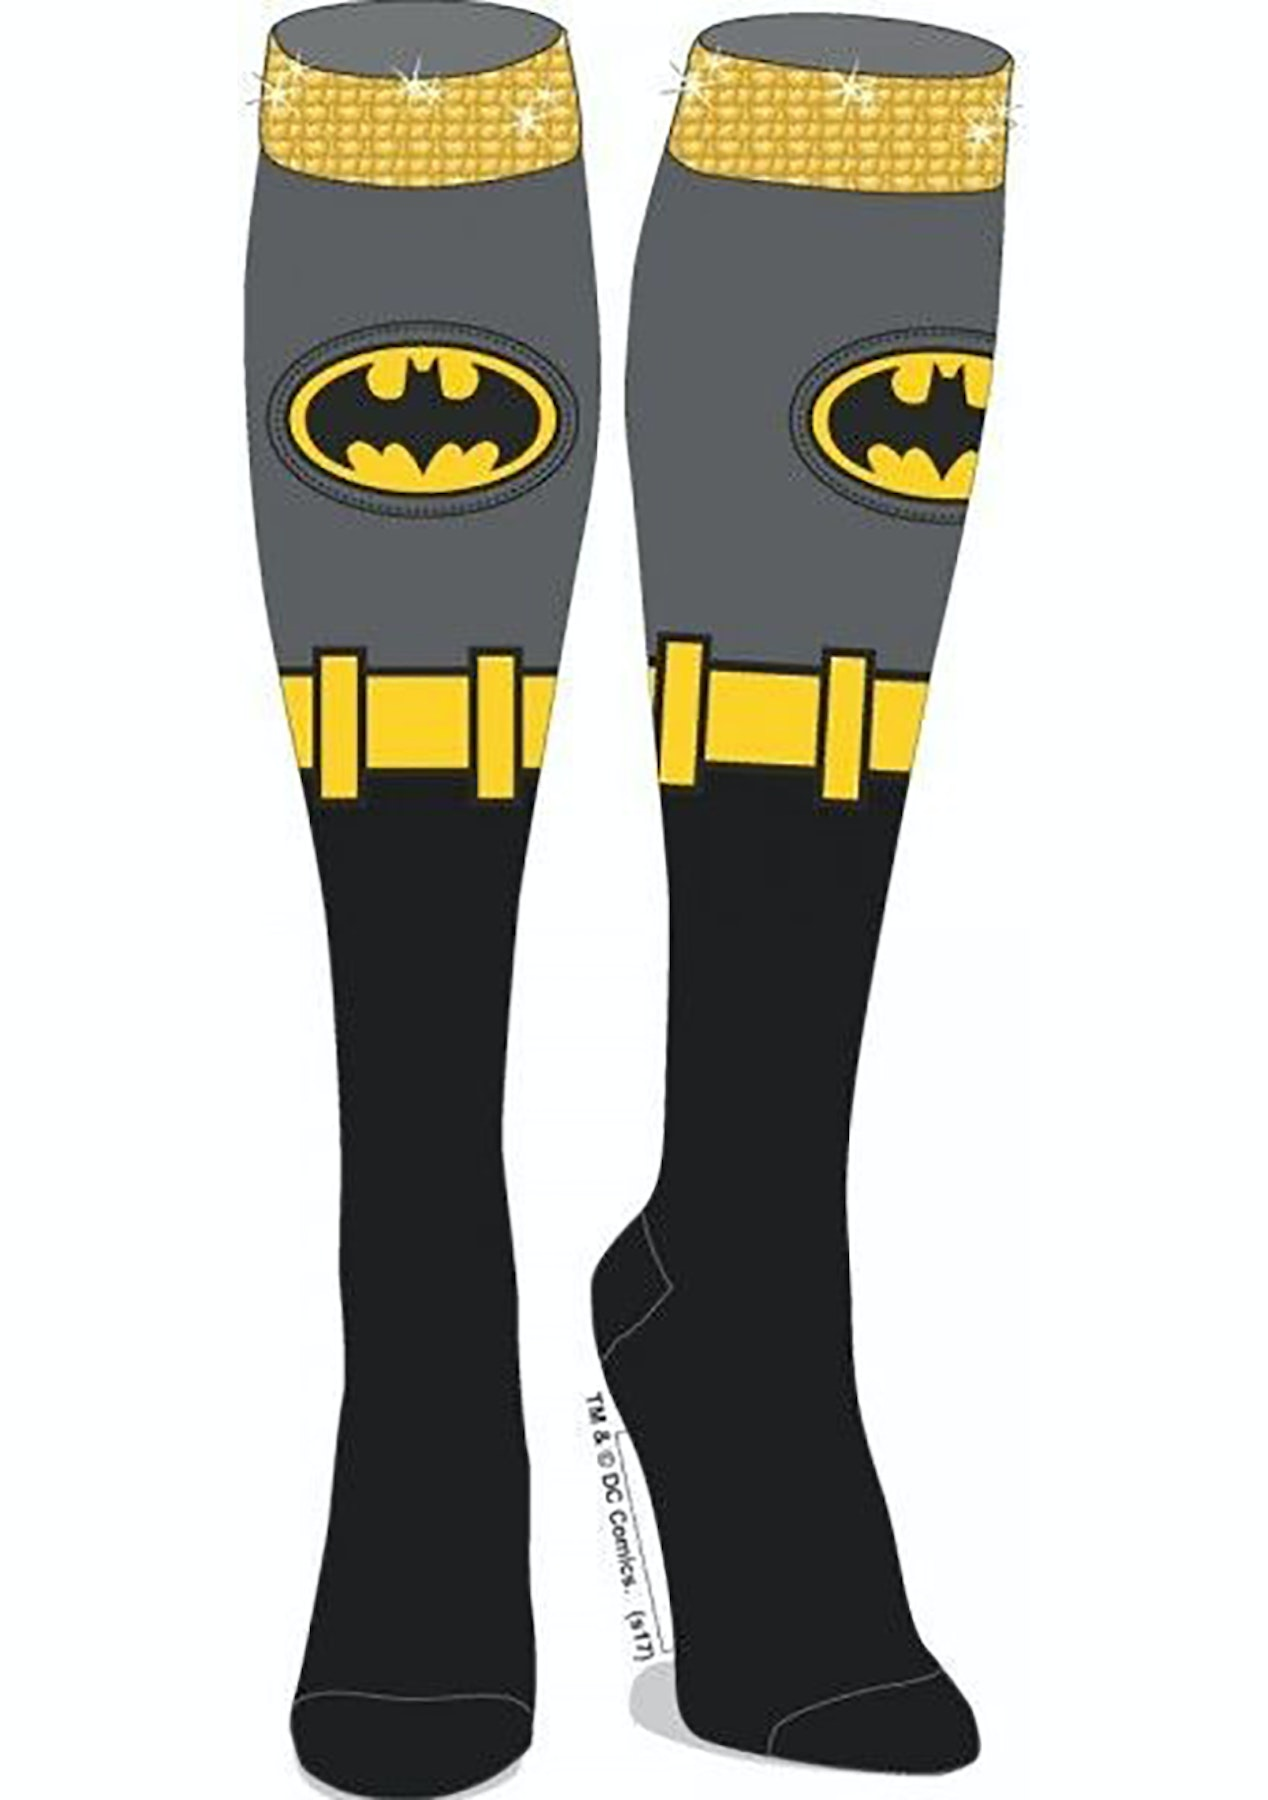 915bb1f2a DC Comics Batman Sequin Cuff Knee High Socks - 3 Months to Xmas - The Toy  Sale for Little   Big Kids - Onceit